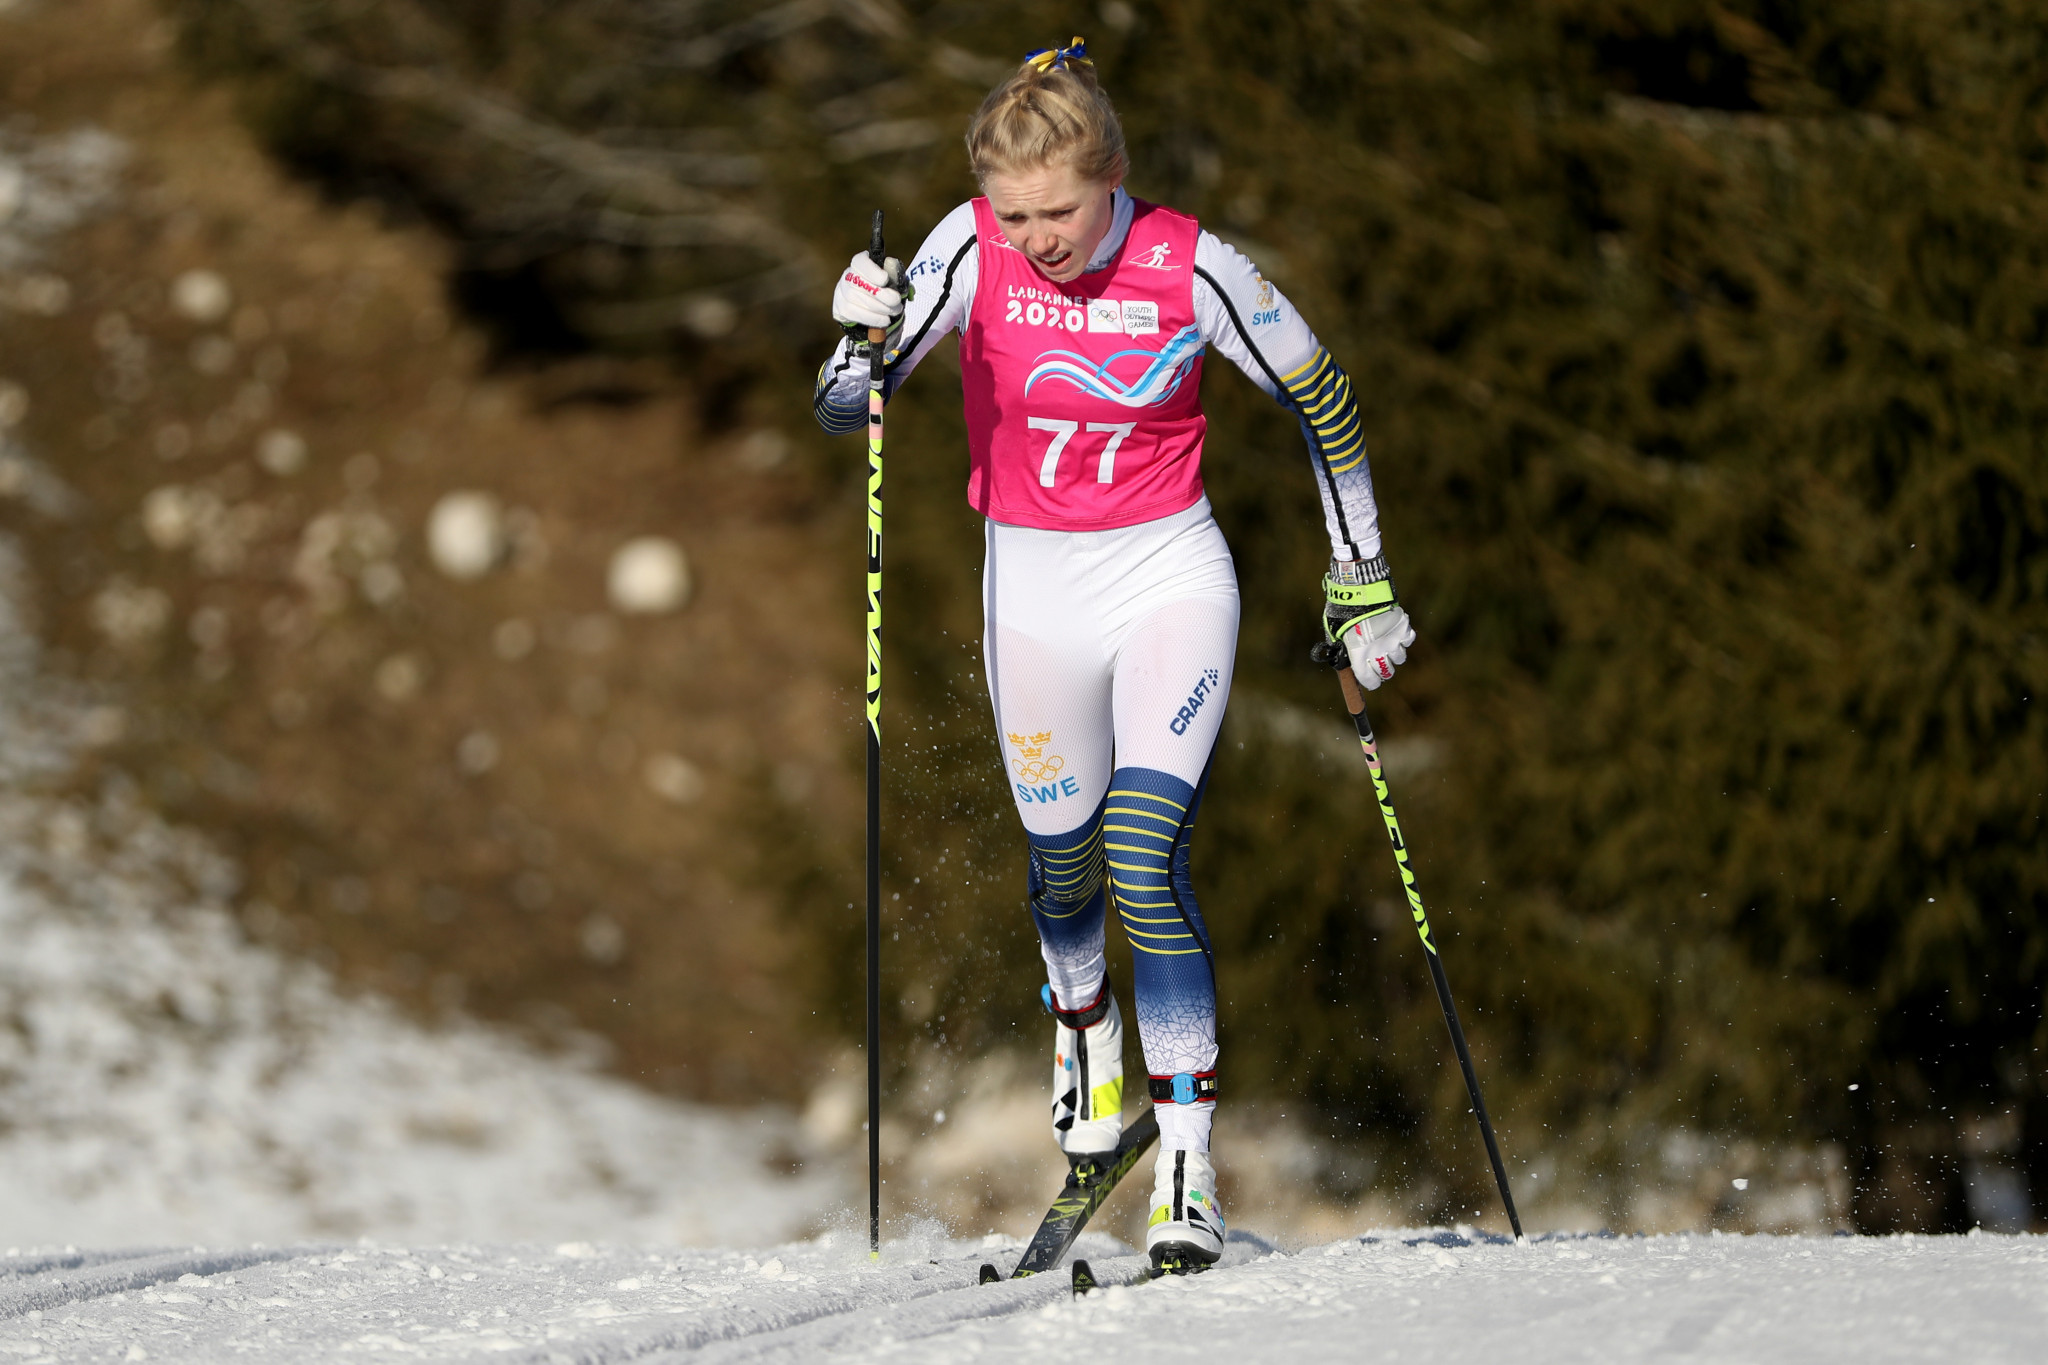 Rosenberg completes Lausanne 2020 medal set with final cross-country title